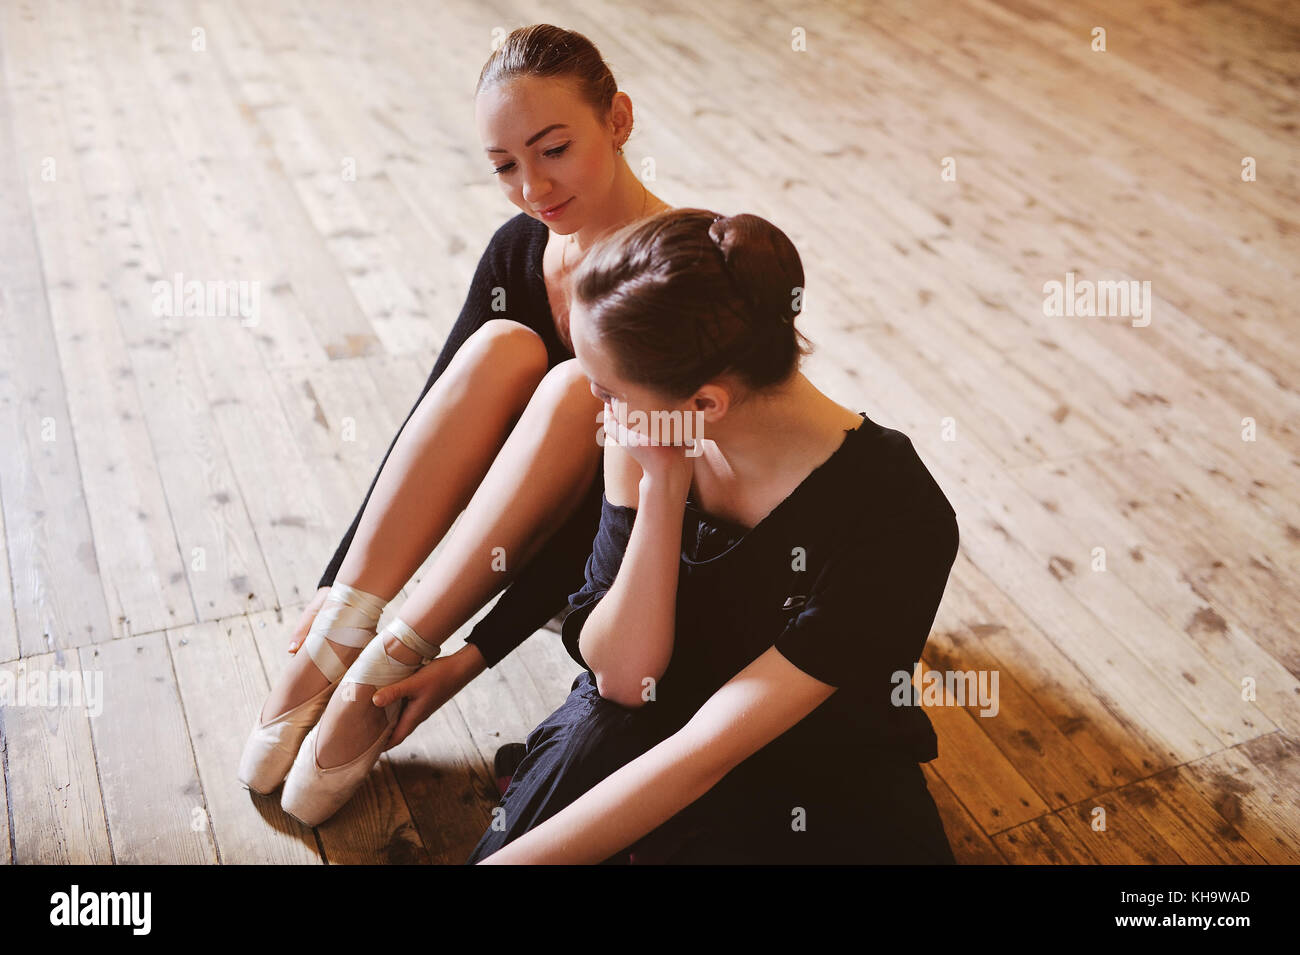 two ballerinas talking and smiling sitting on a wooden floor - Stock Image